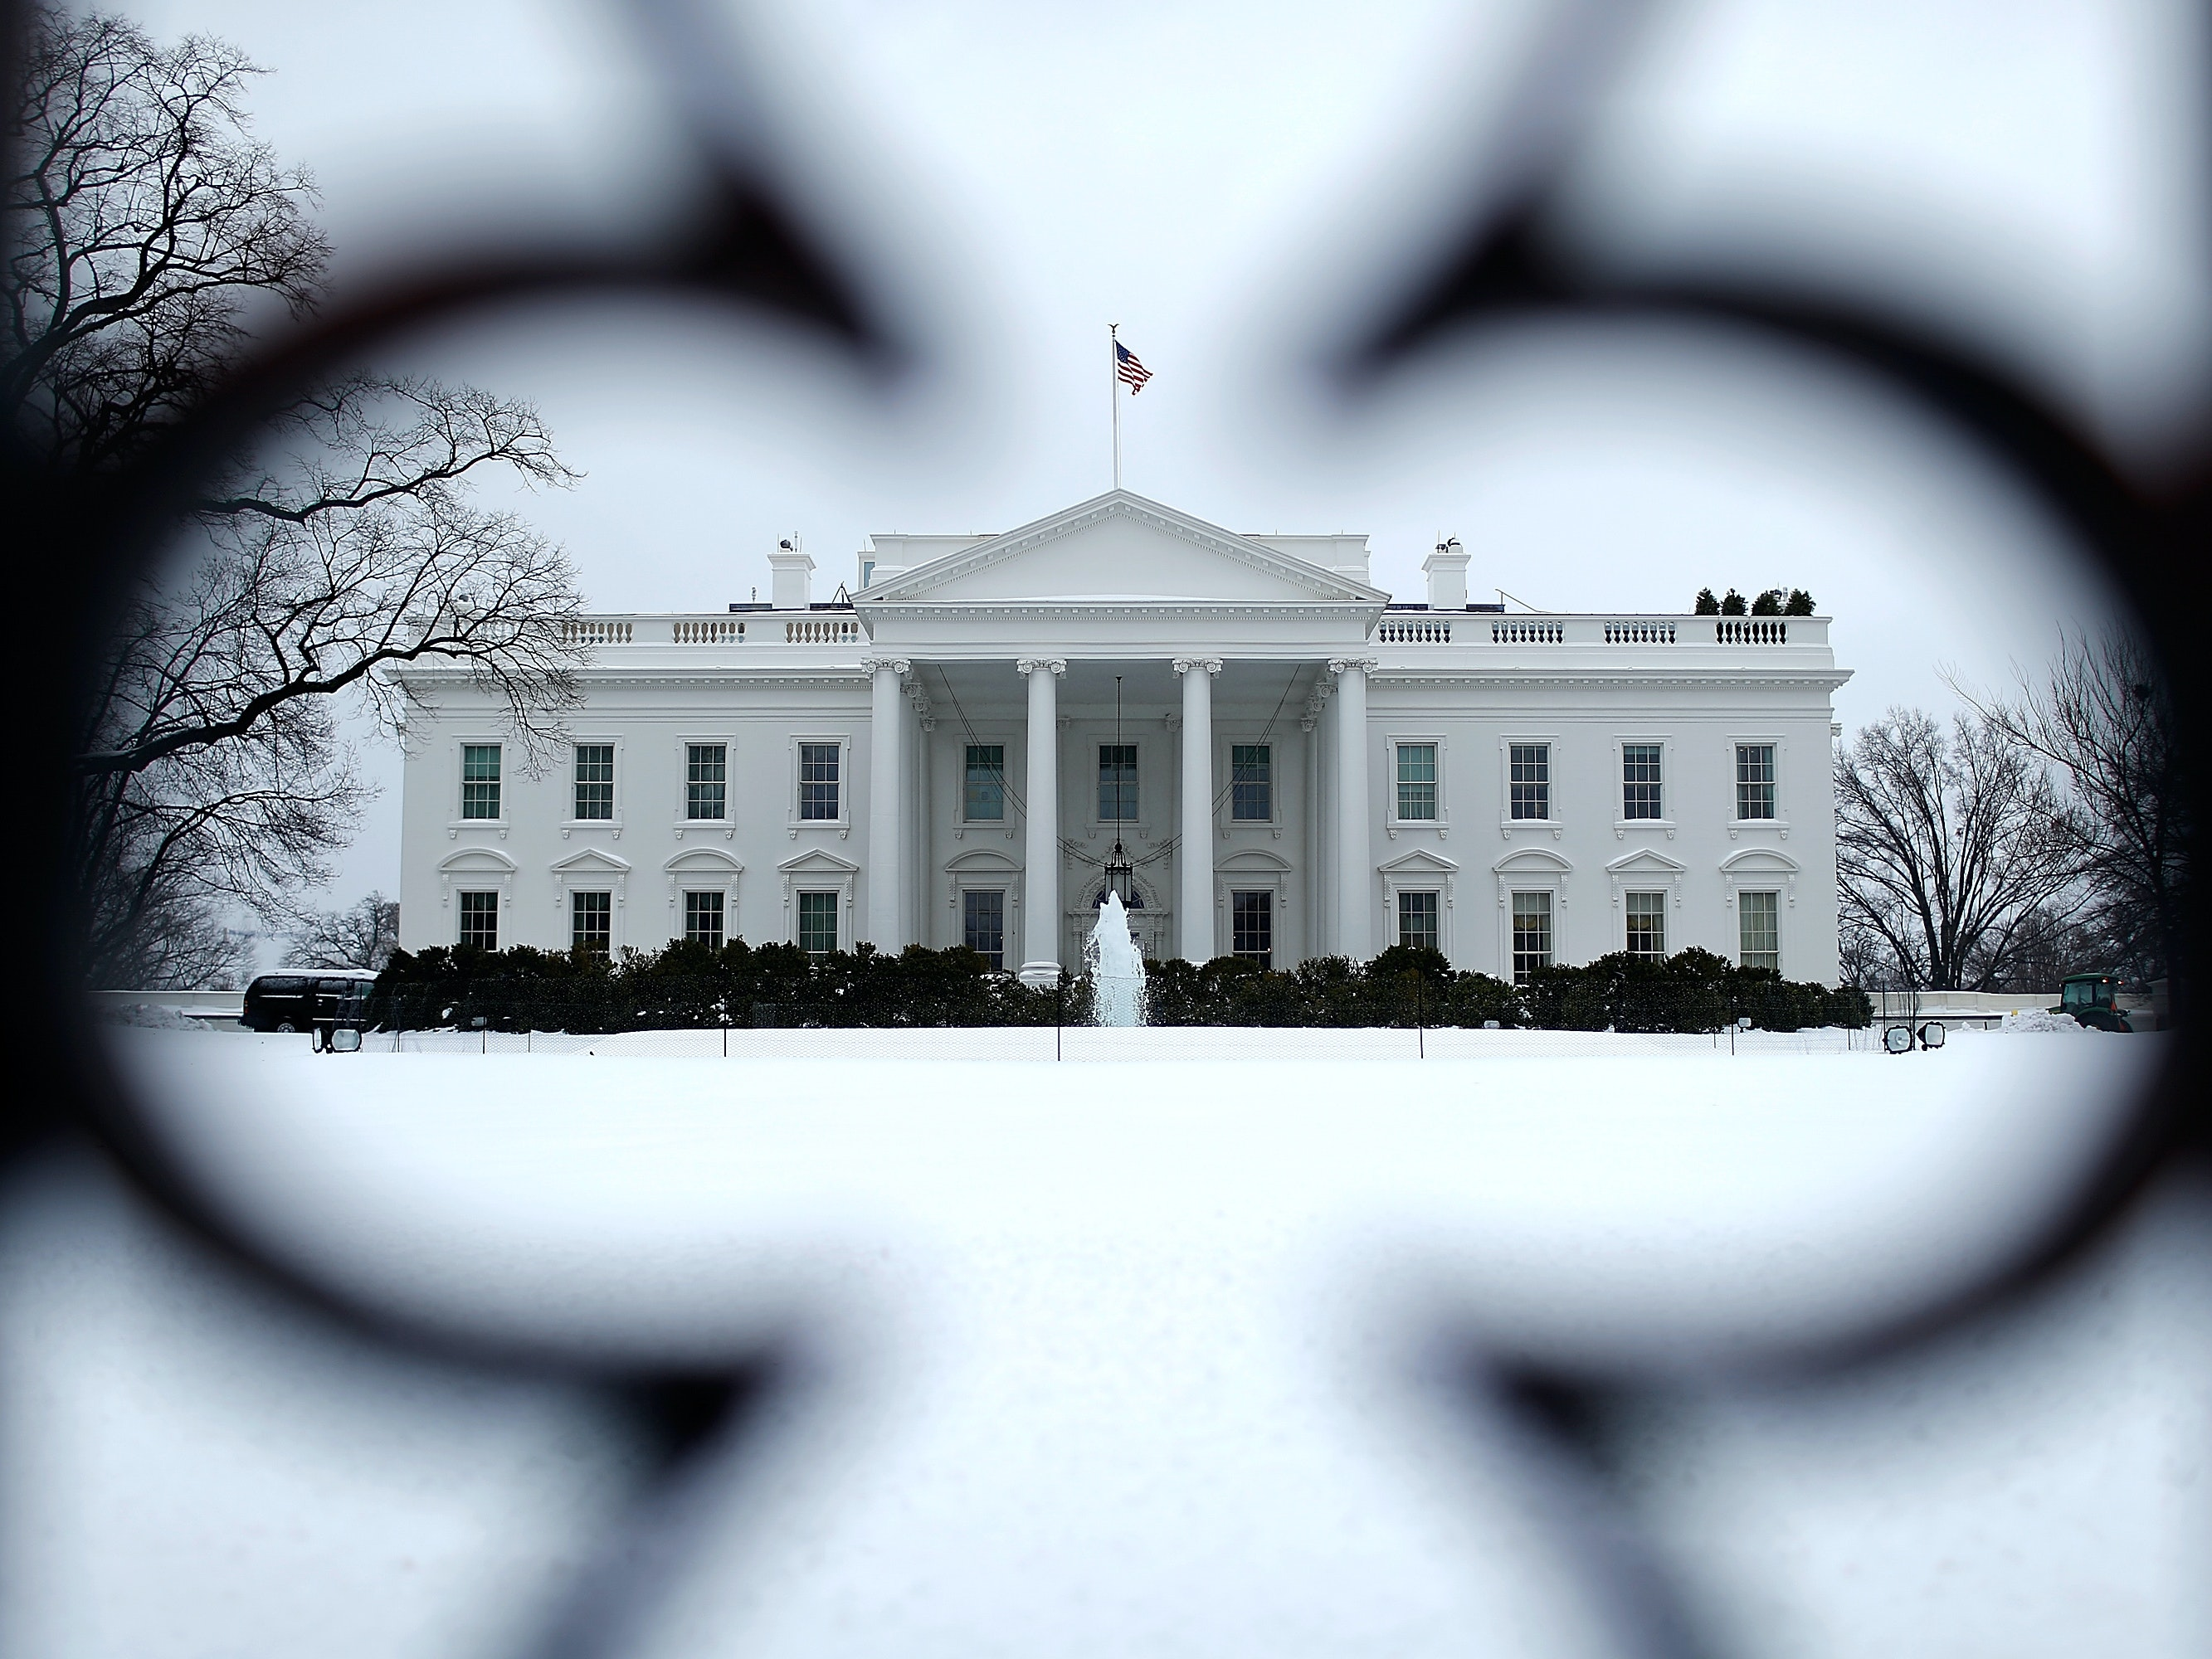 WASHINGTON, DC - FEBRUARY 13:  The White House north lawn is covered in snow February 13, 2014 in Washington, DC. The east coast of the U.S. was hit with a winter storm leaving up to 12 inches of snow on the ground in parts of the Washington, DC area.  (Photo by Win McNamee/Getty Images)